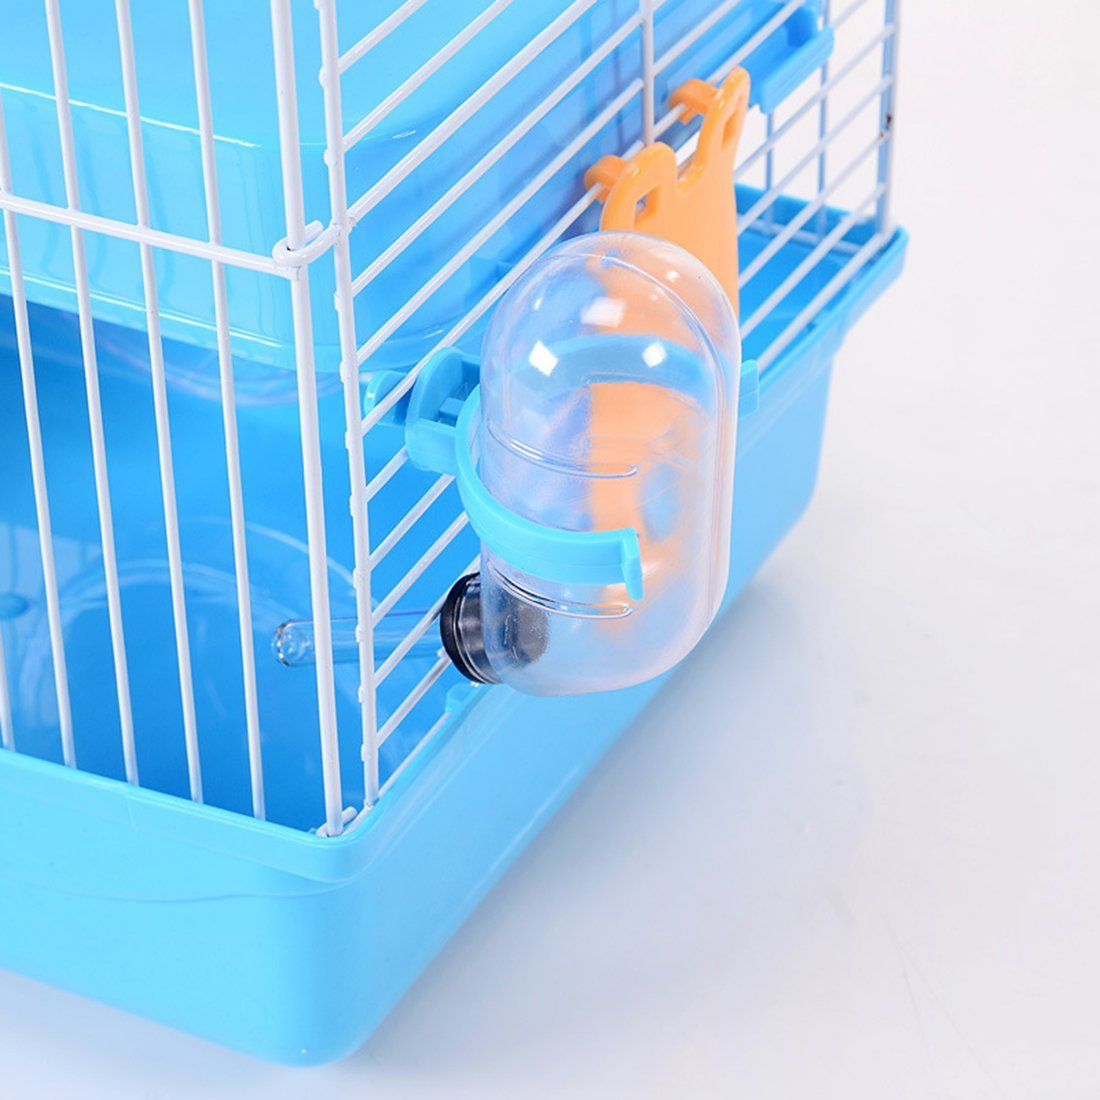 Jtengyao Hamster Mouse Hamster Cage Luxury Castle For Small Indoor Pet House Small Animal House Diy 3 Floor Cages 10 Small Animal Cage Small Pets Hamster Cage